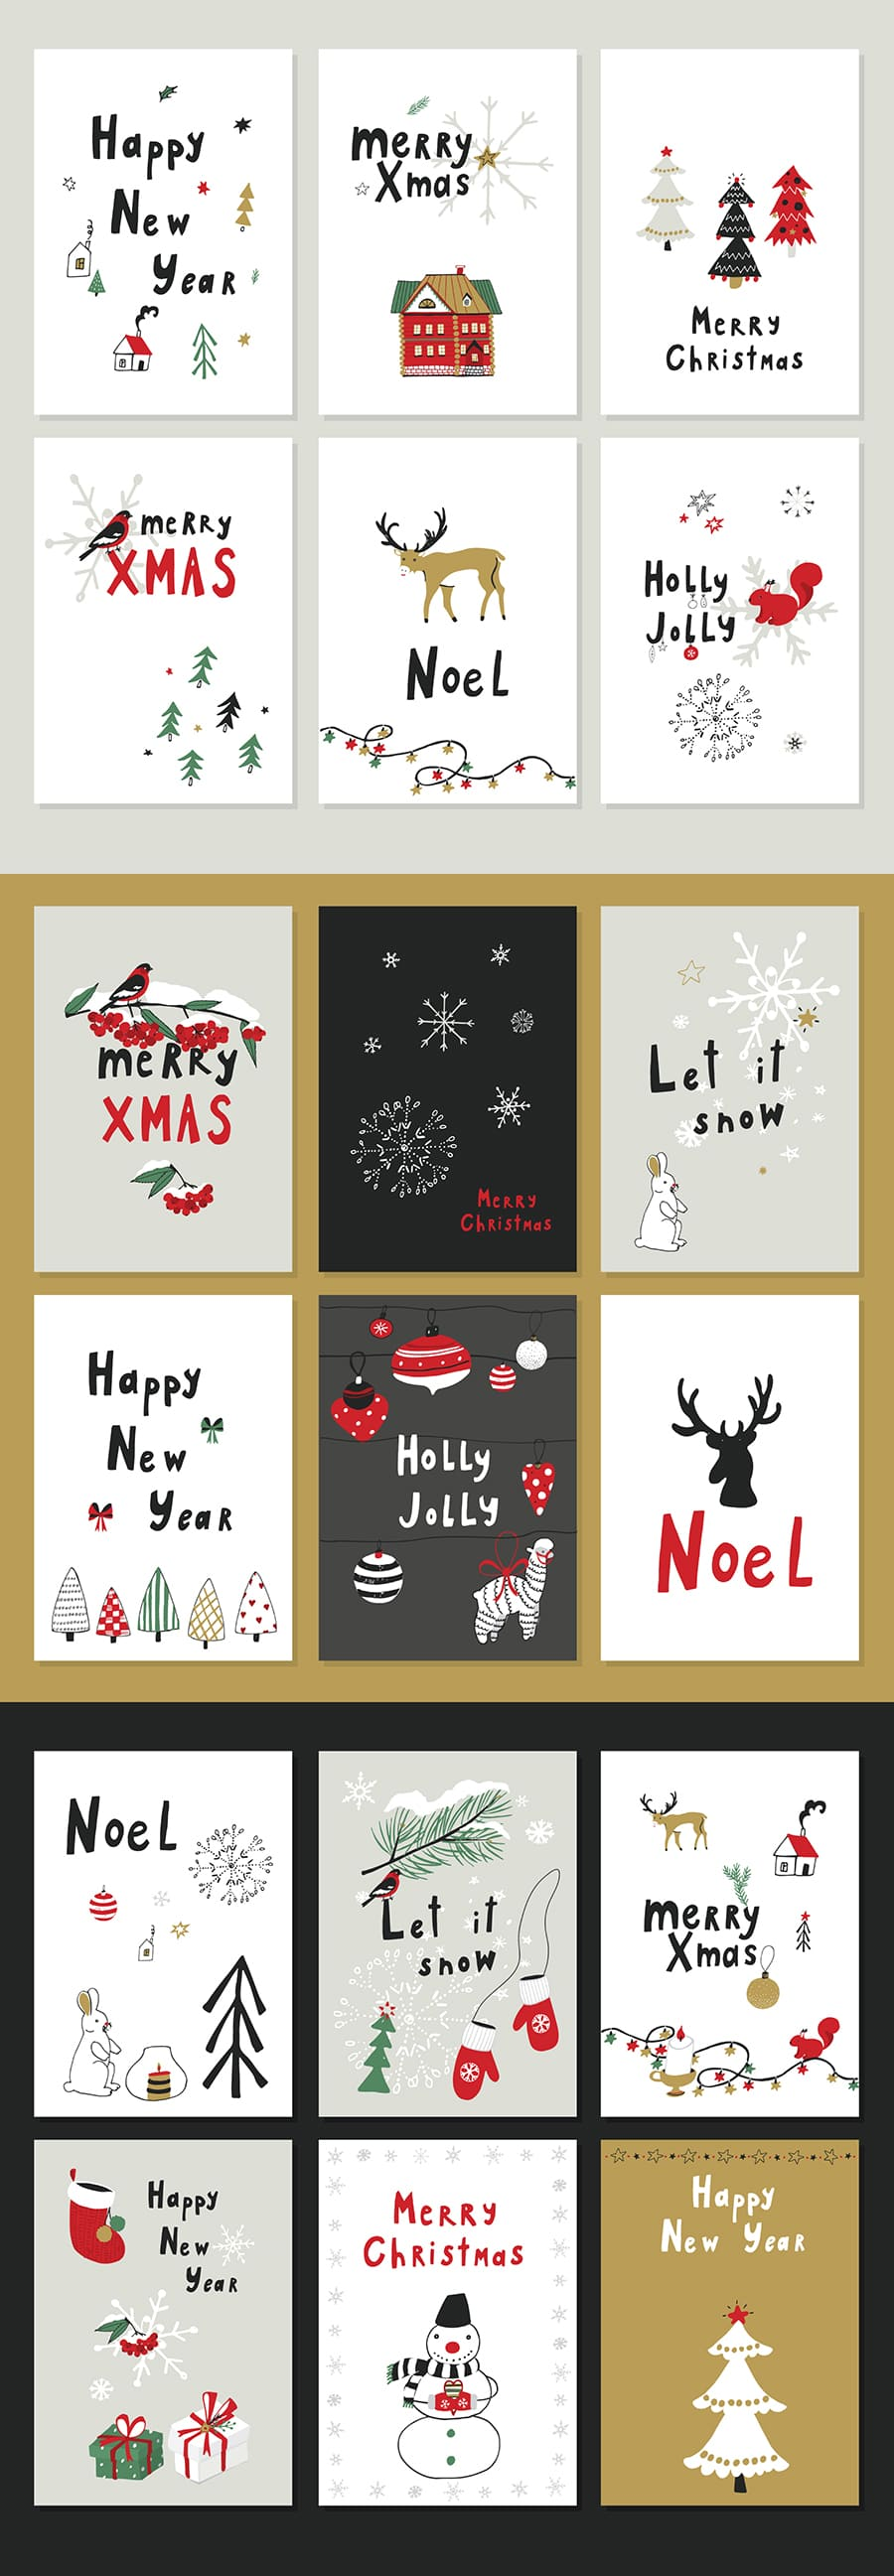 Christmas Patterns & Postcards: Merry X-Mas cover image.